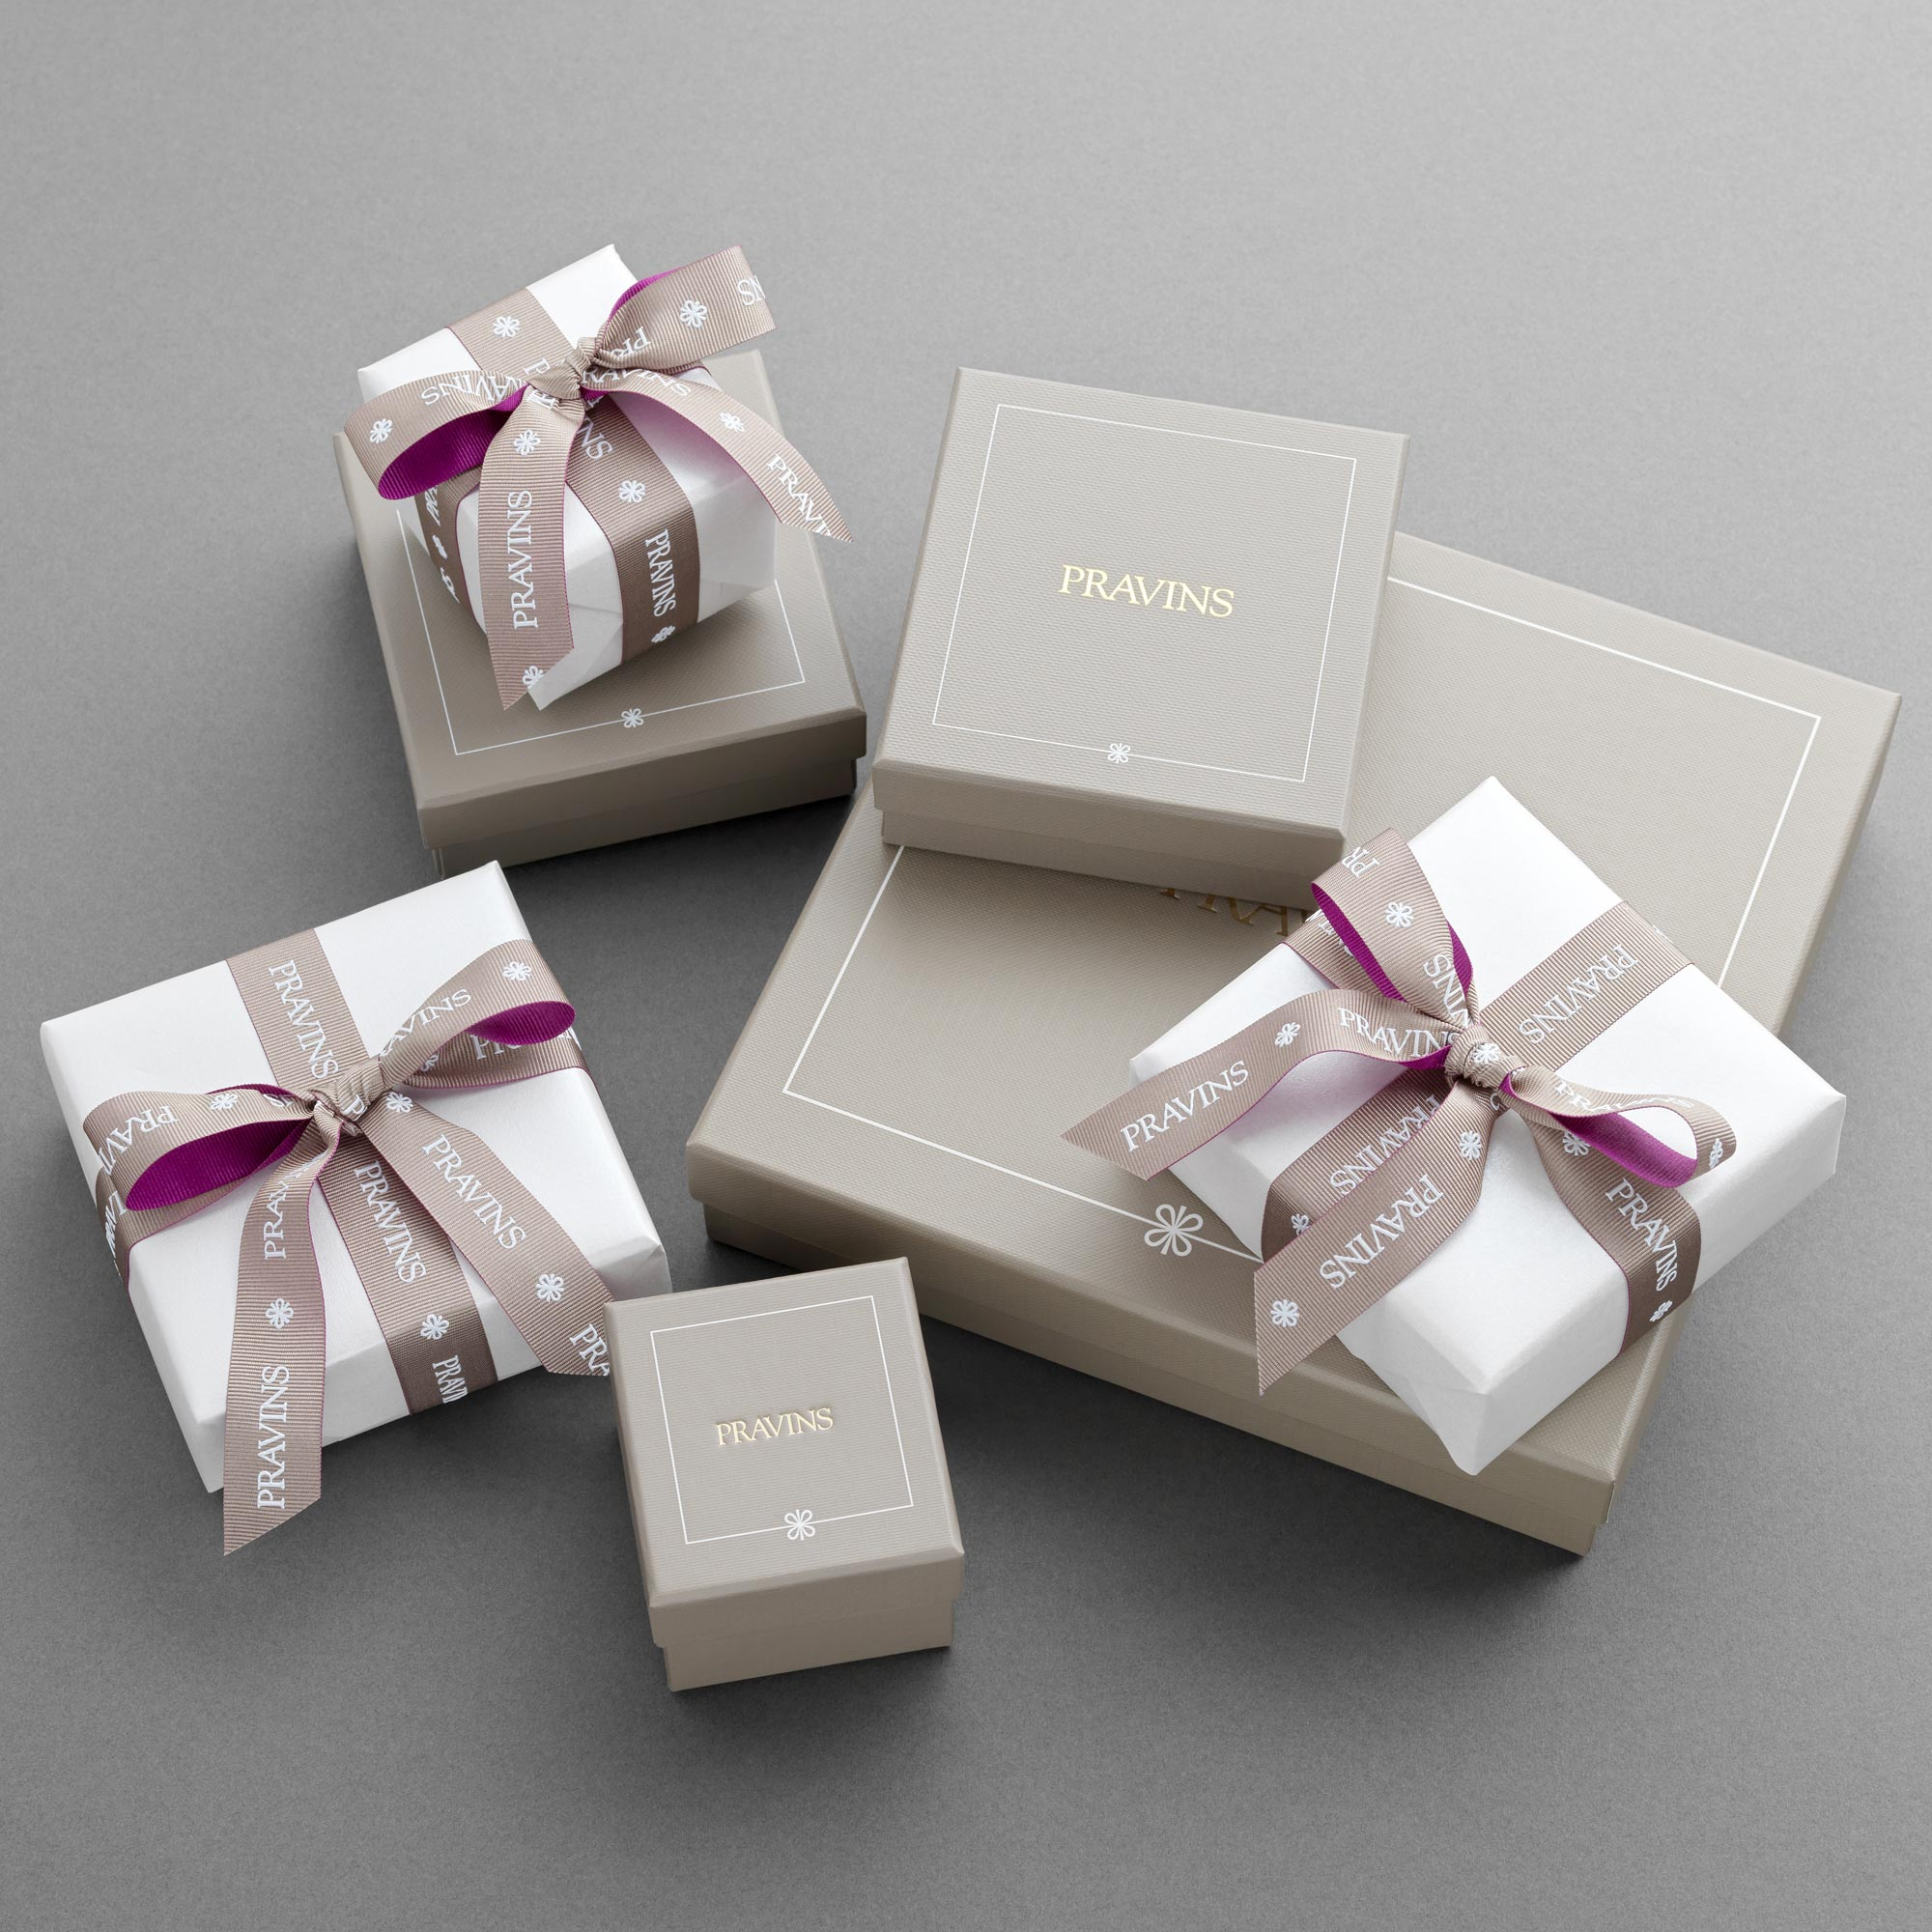 Pravins Gift Packaging